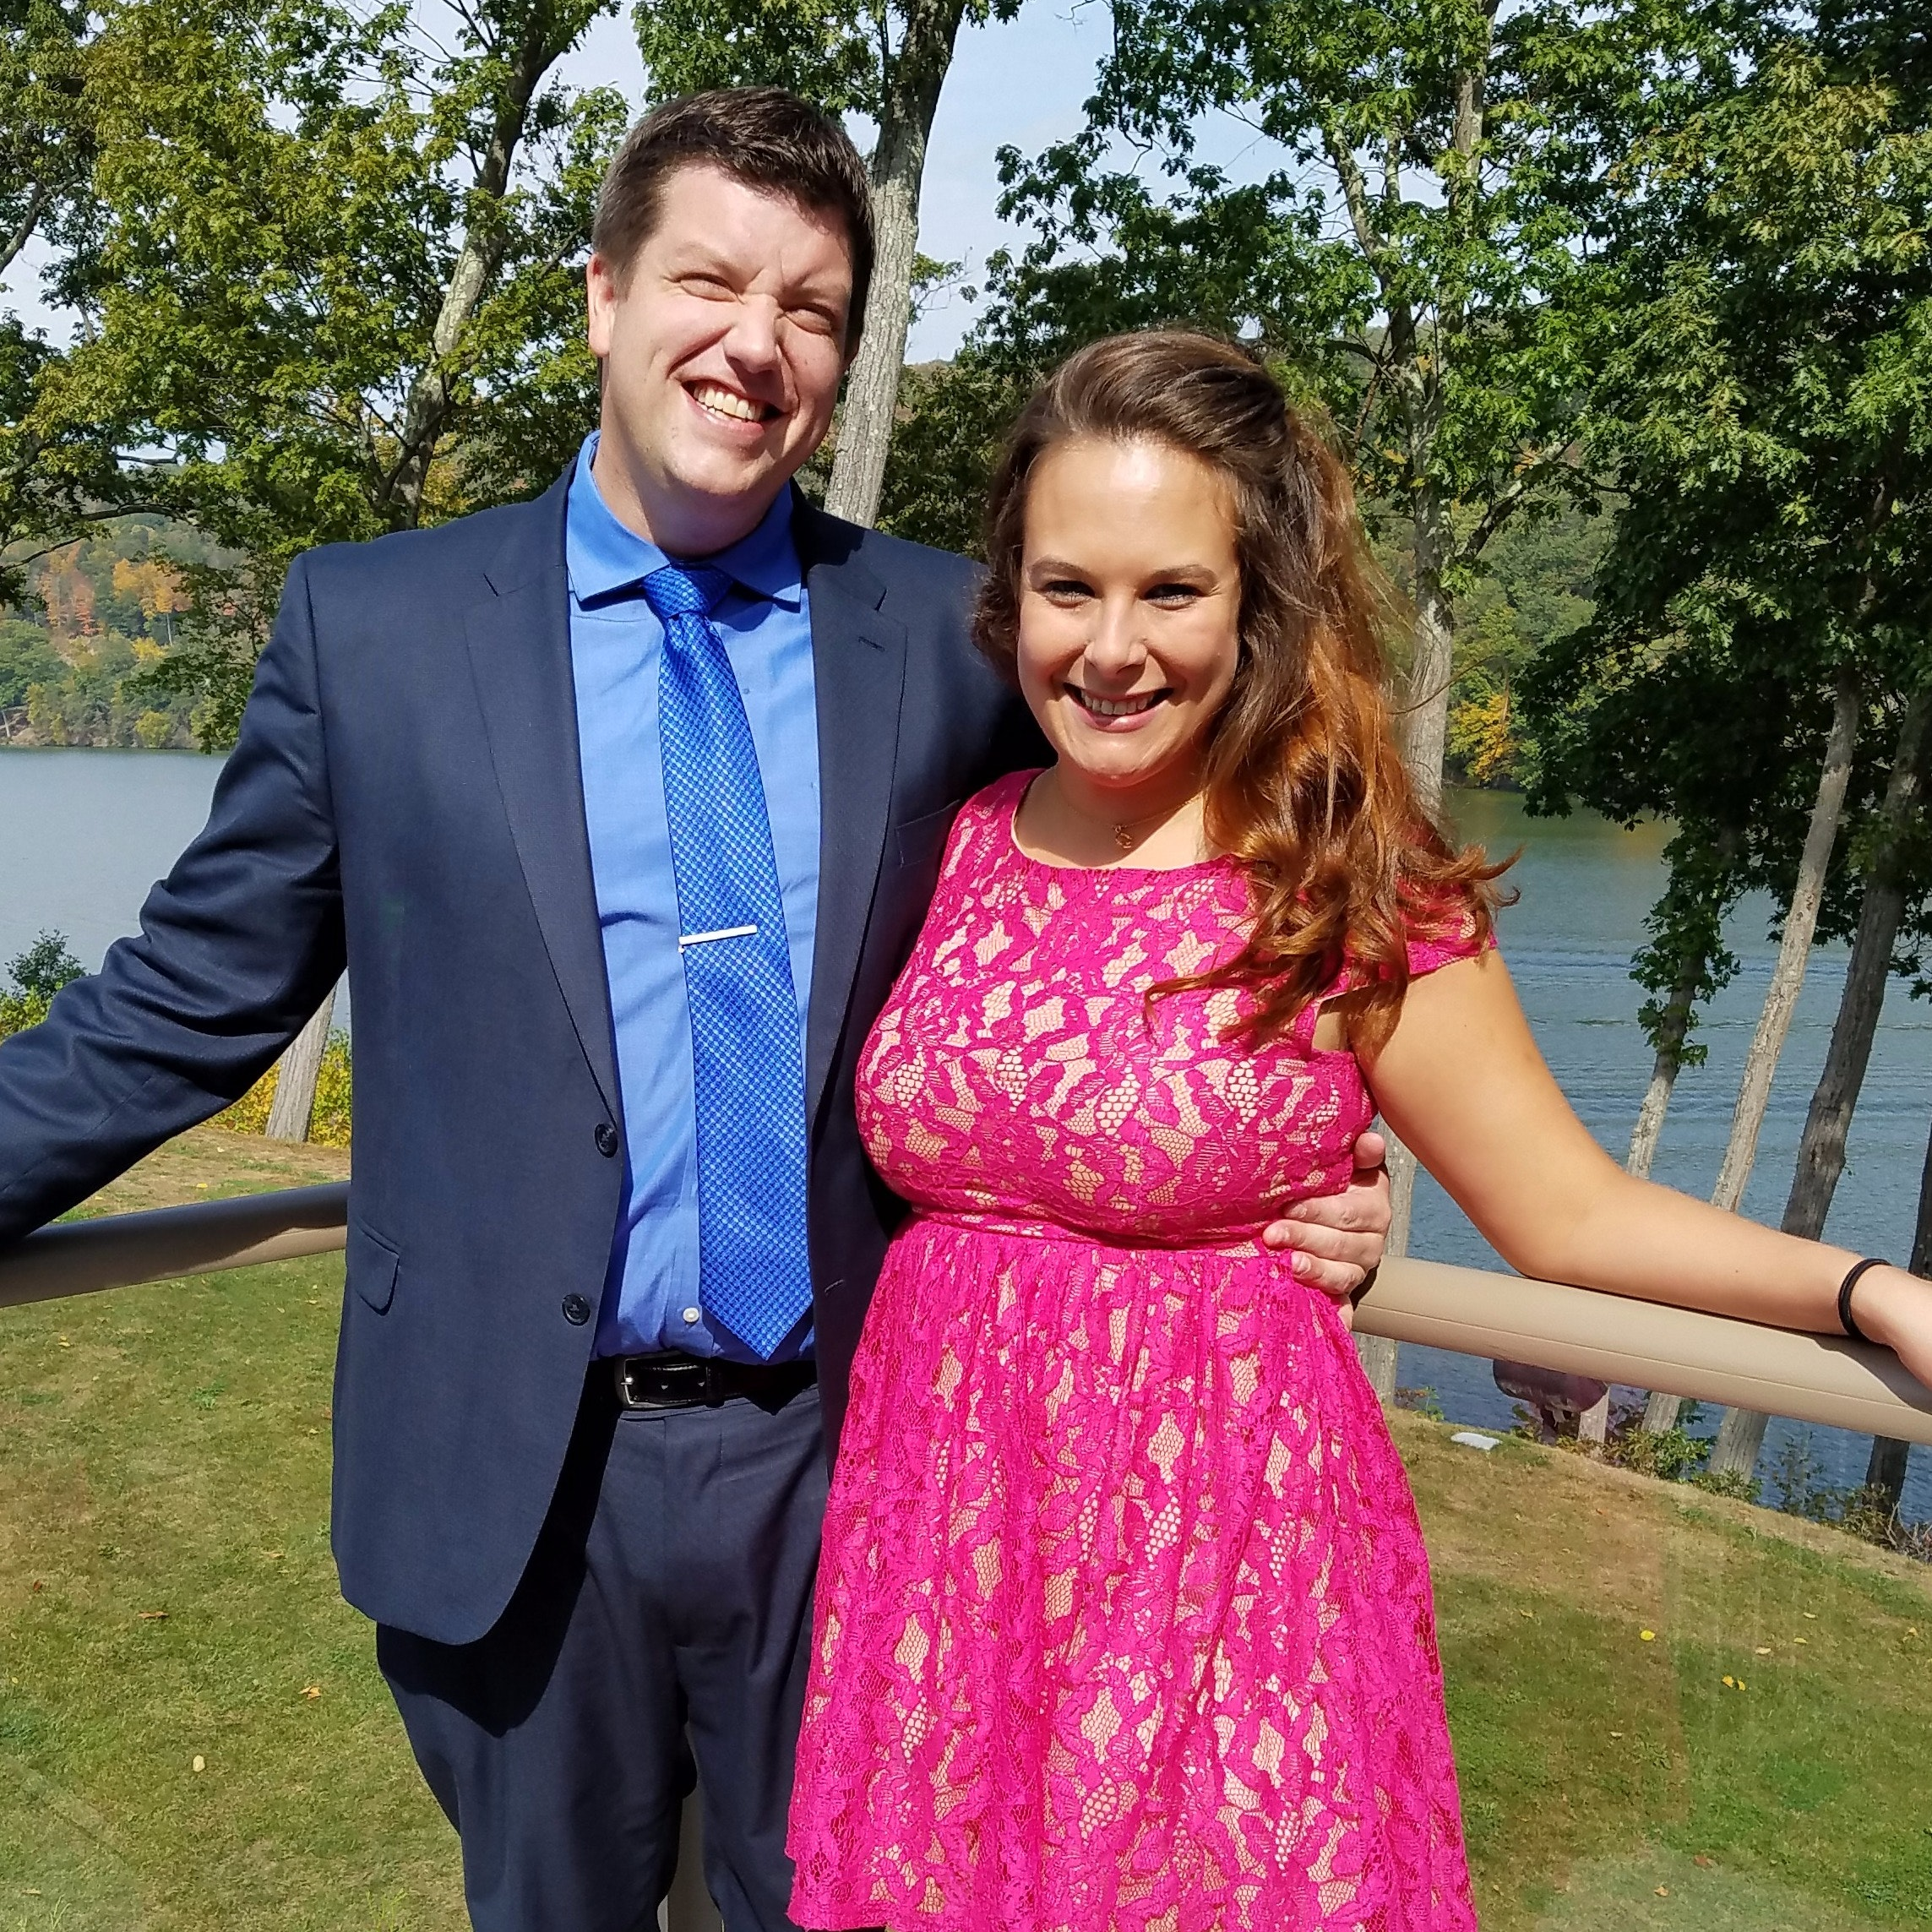 Kristin B. and Brent S. .